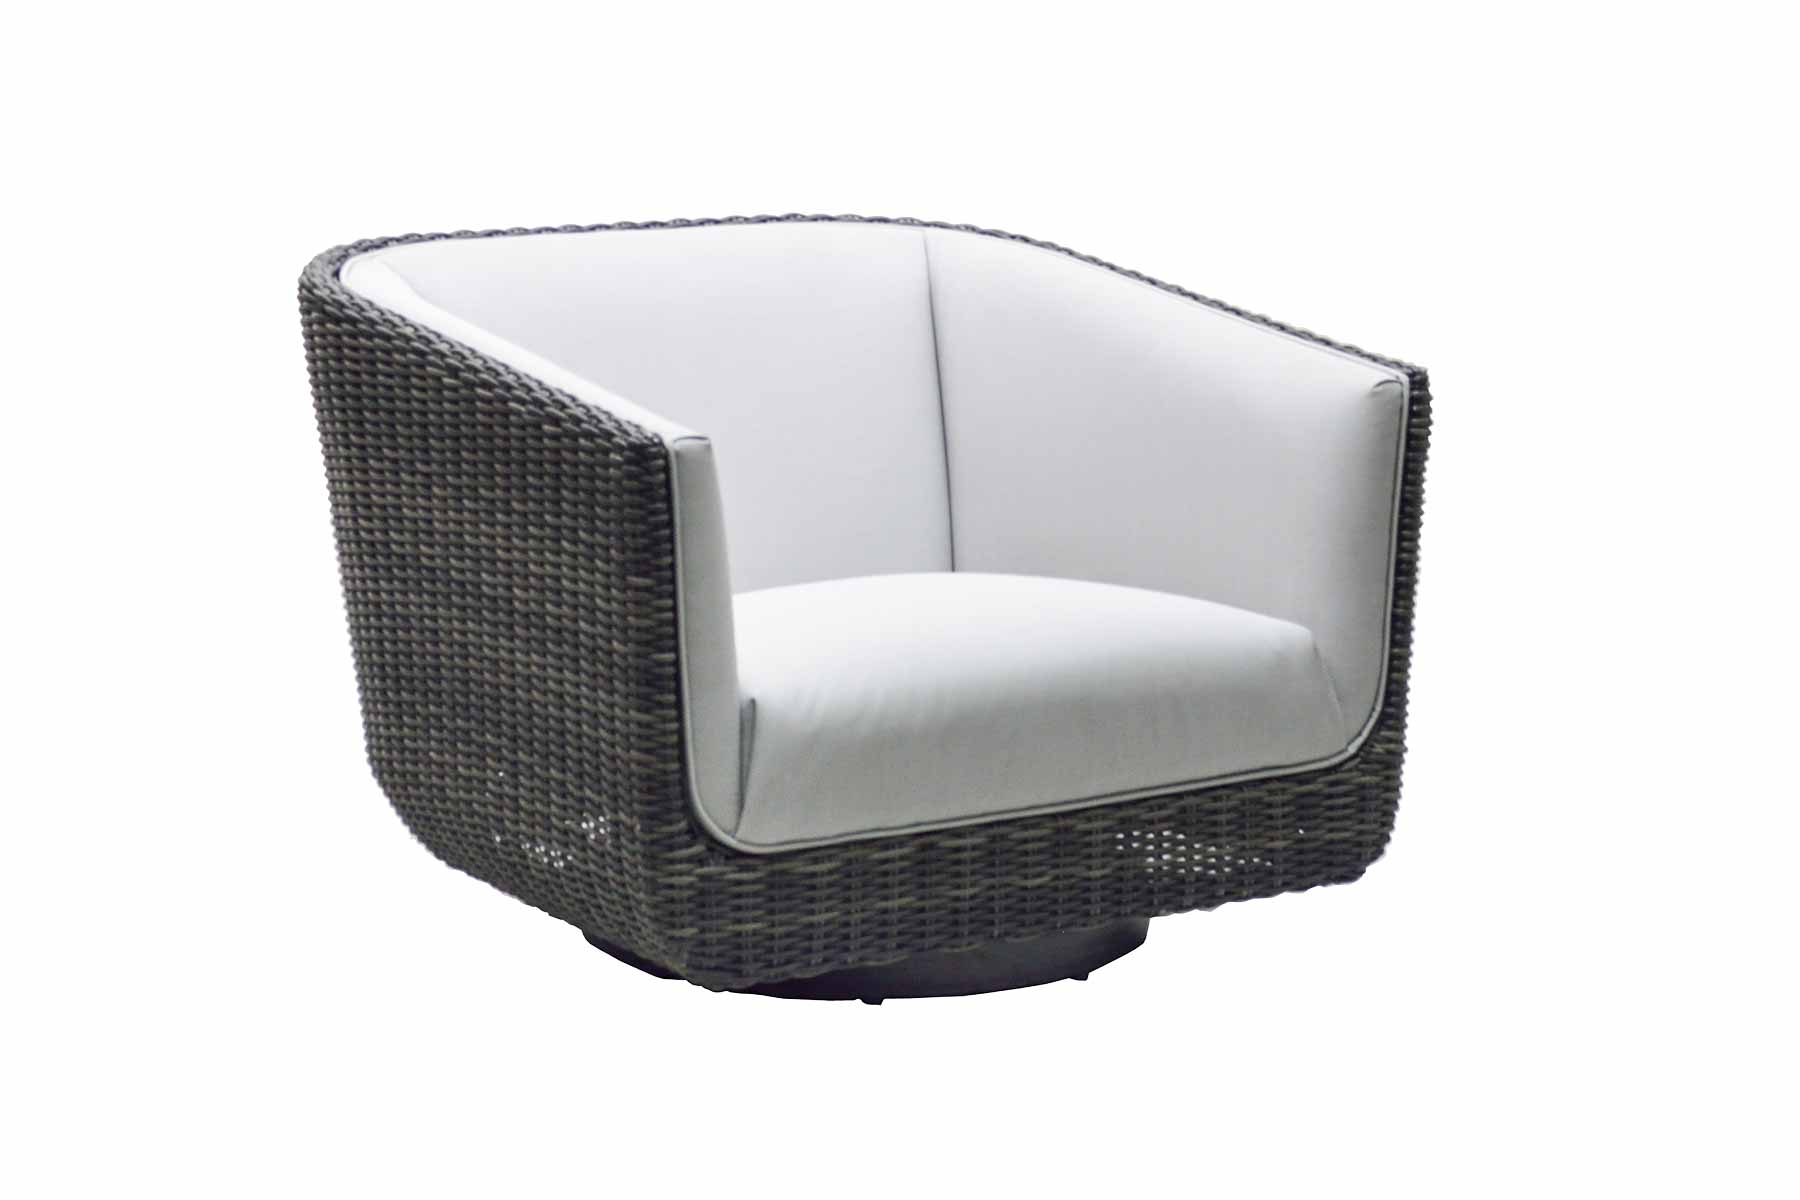 "974228 Tribeca Woven Upholstered Swivel Lounger Chair   34"" x 32"" x 26"""